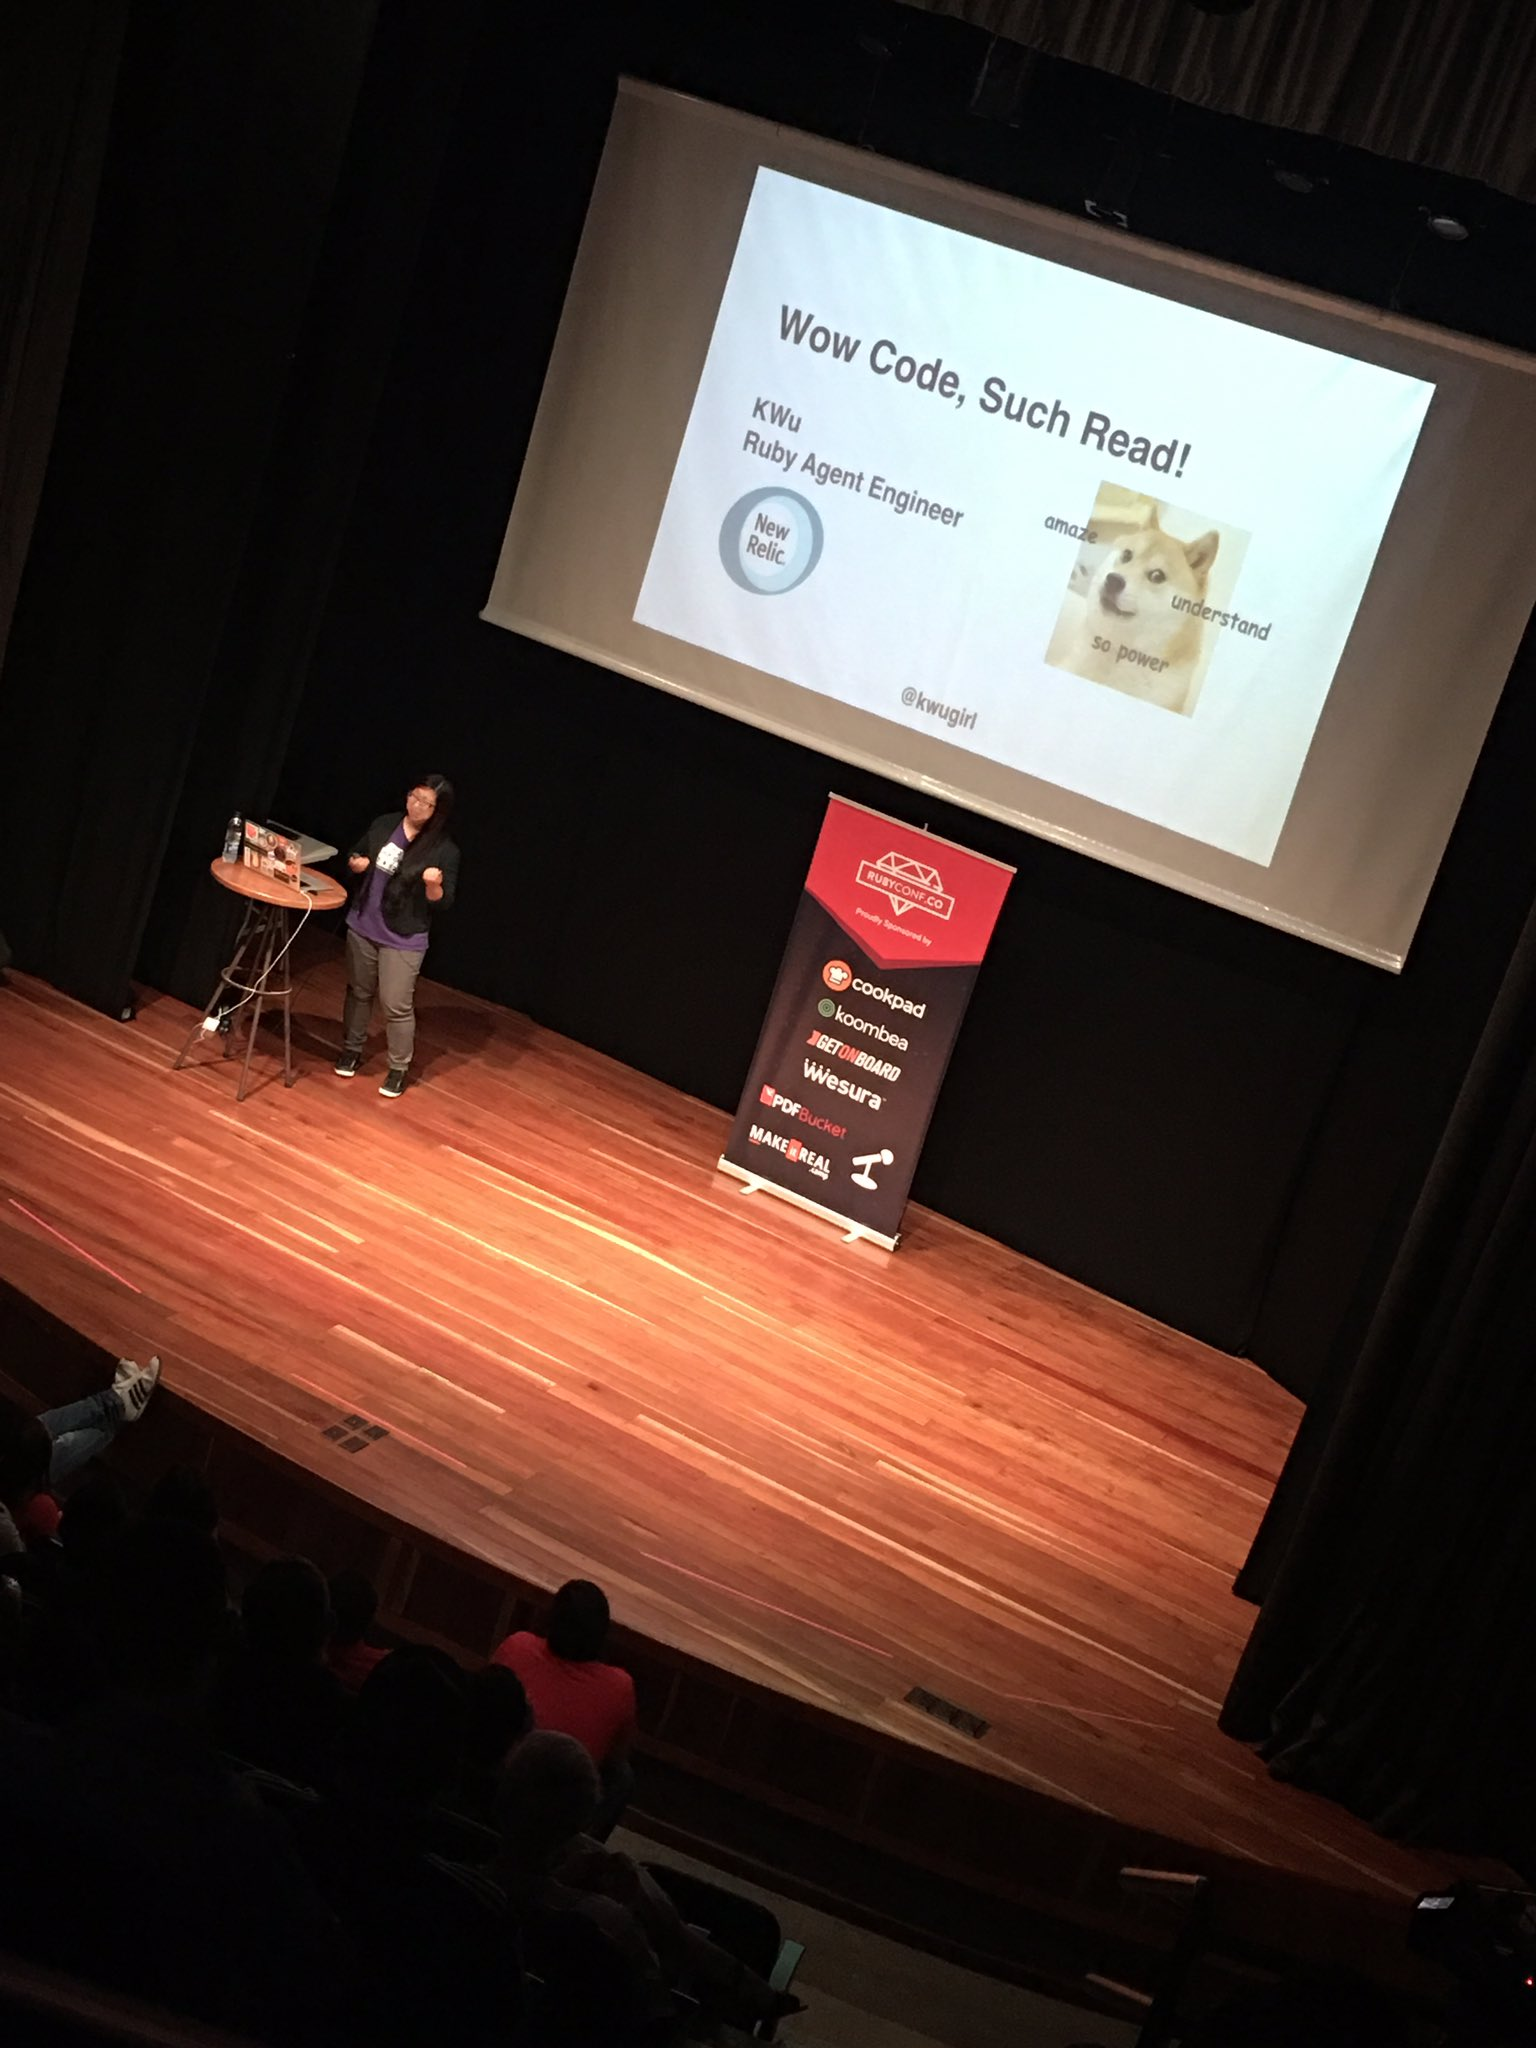 Thanks to @kwugirl for the great tricks to read code at @RubyConfCo #RubyConfCo 2016 #Medellin #Colombia https://t.co/HLb5ciyIt7